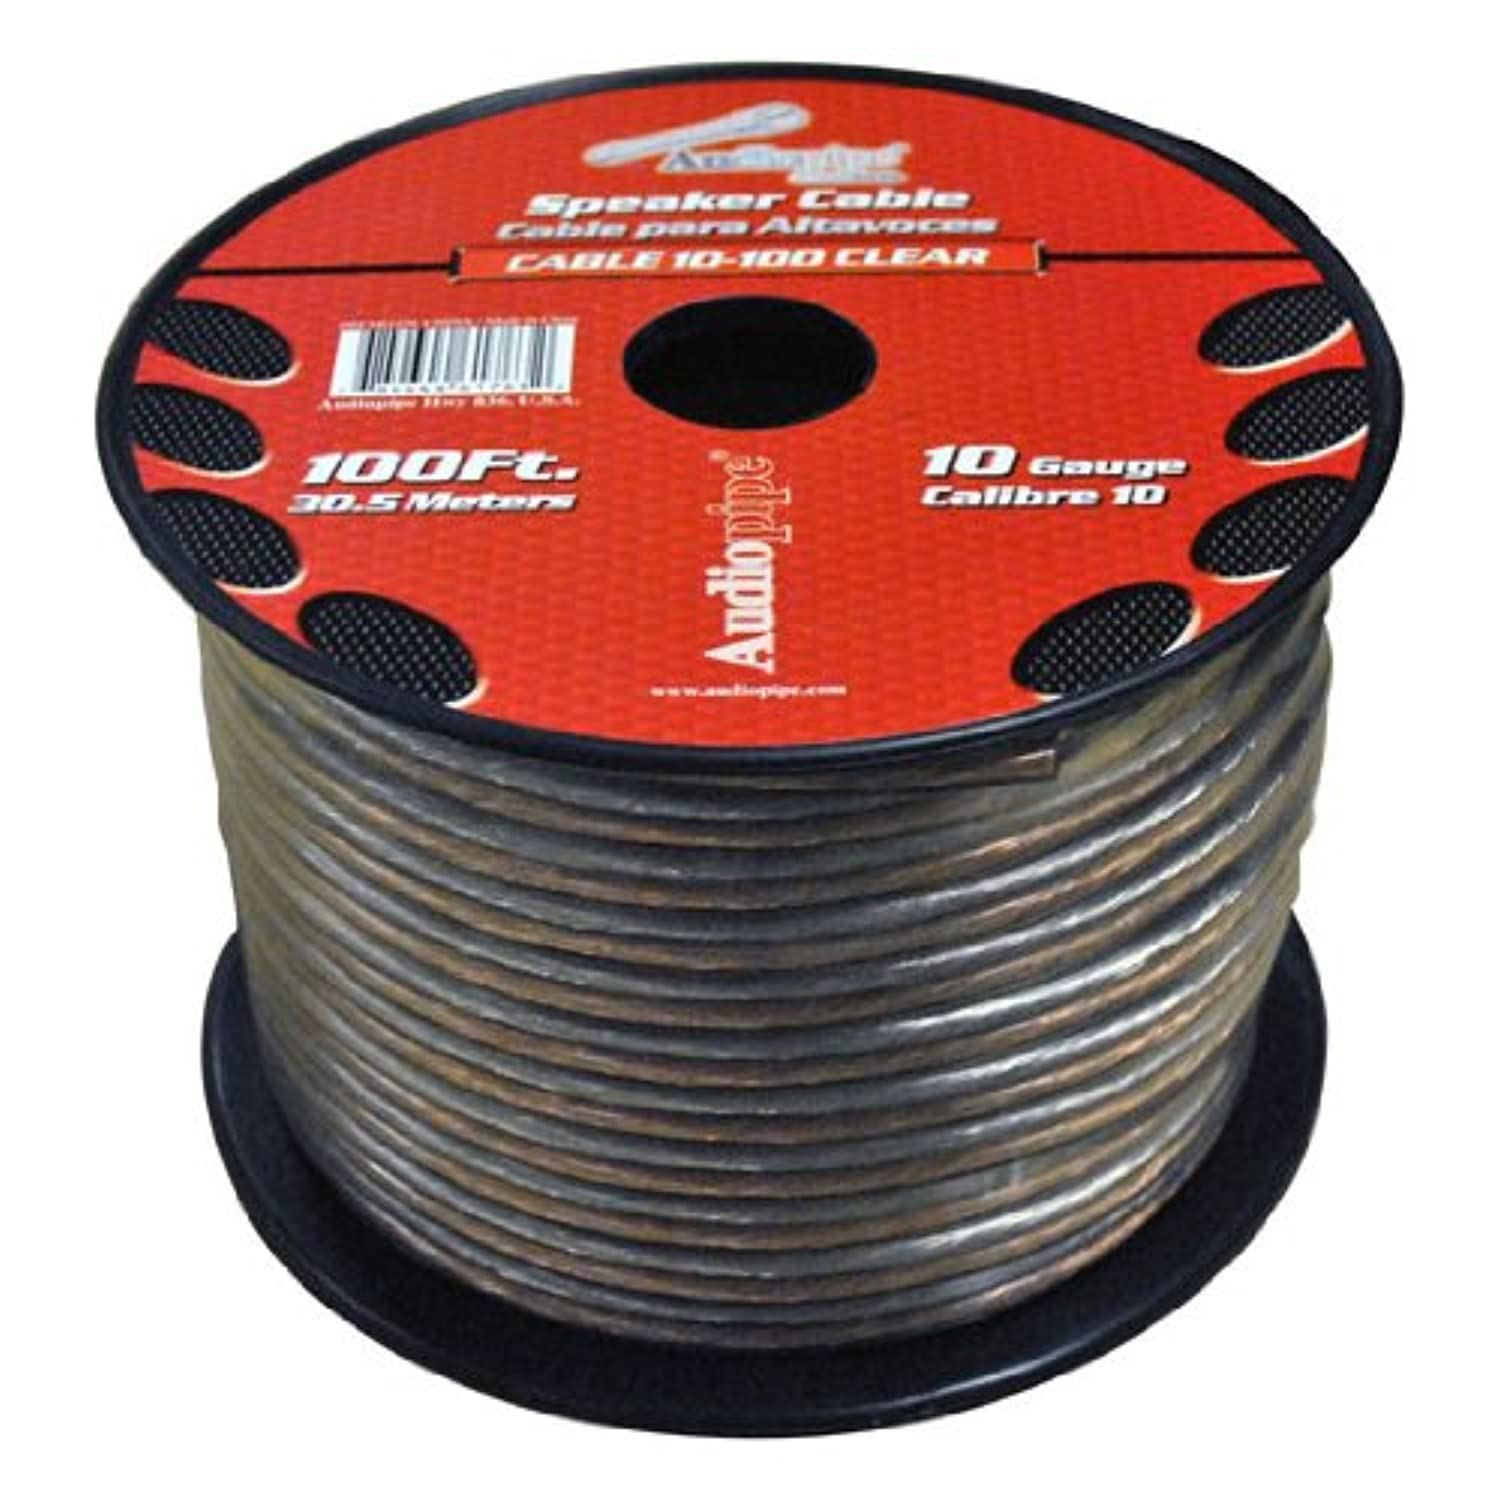 10 Gauge Clear Speaker Wire 100' FT 2 Conductor Audio Cable Zip Cord Audiopipe